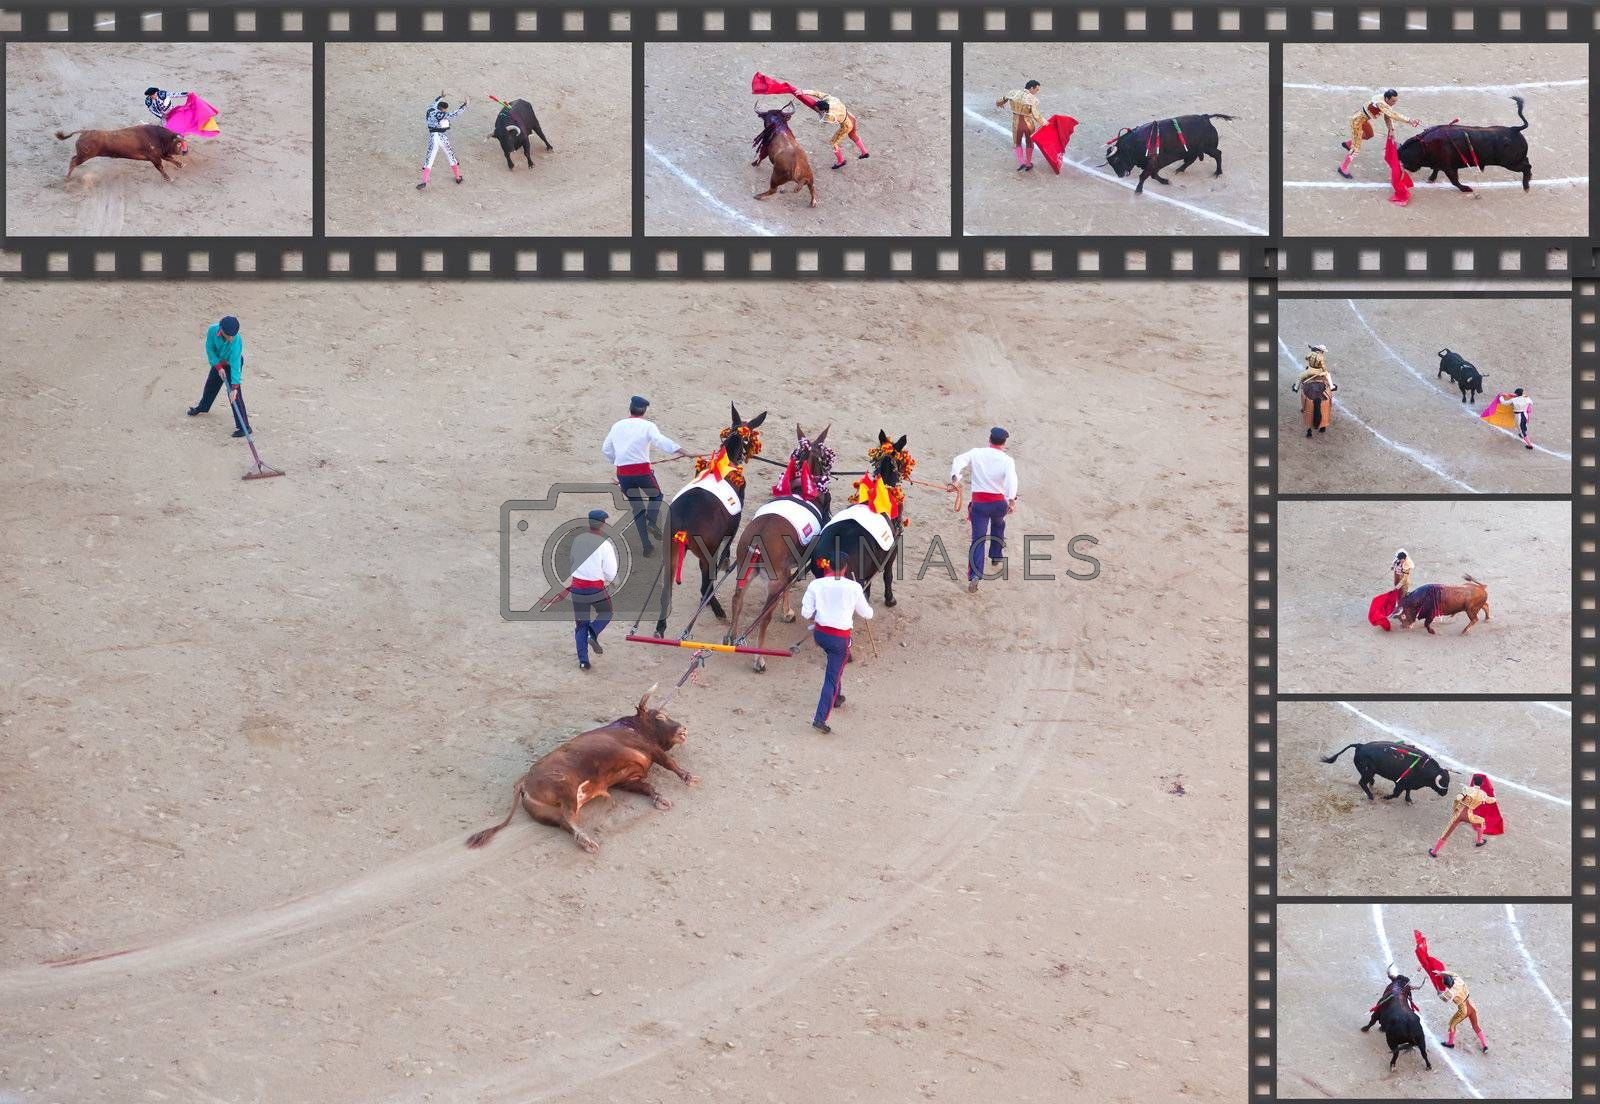 Bullfight - the one of the most controversial events in the world. Some factual images of a bullfight in Madrid, Spain on OCTOBER 1, 2010.